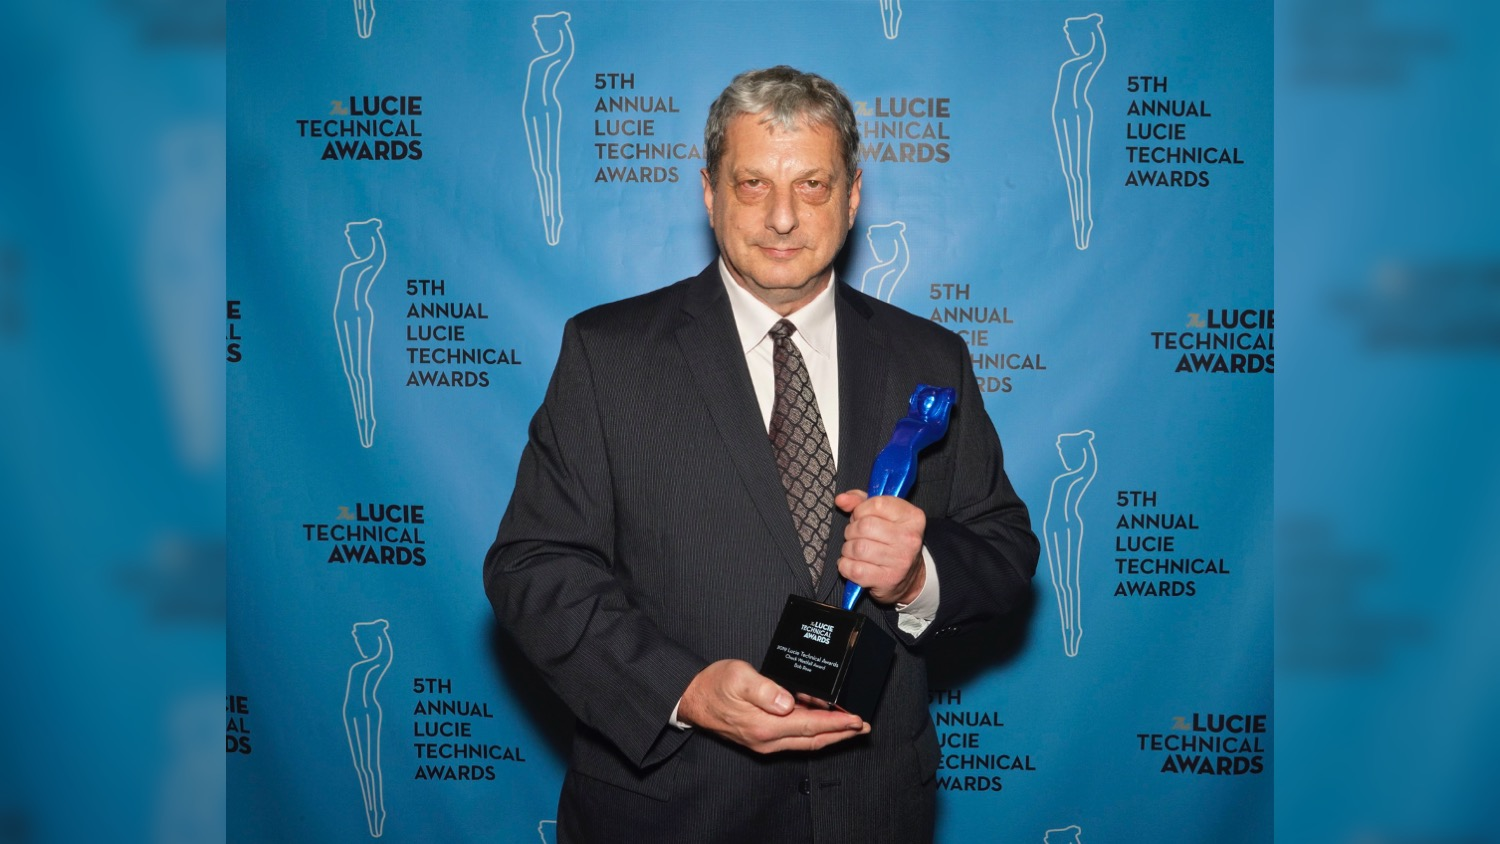 Faculty Bob Rose, dressed in a suit and tie, holds his Chuck Westfall Technical Education Award at the Lucie Awards. He won the award for advancing the photographic industry.